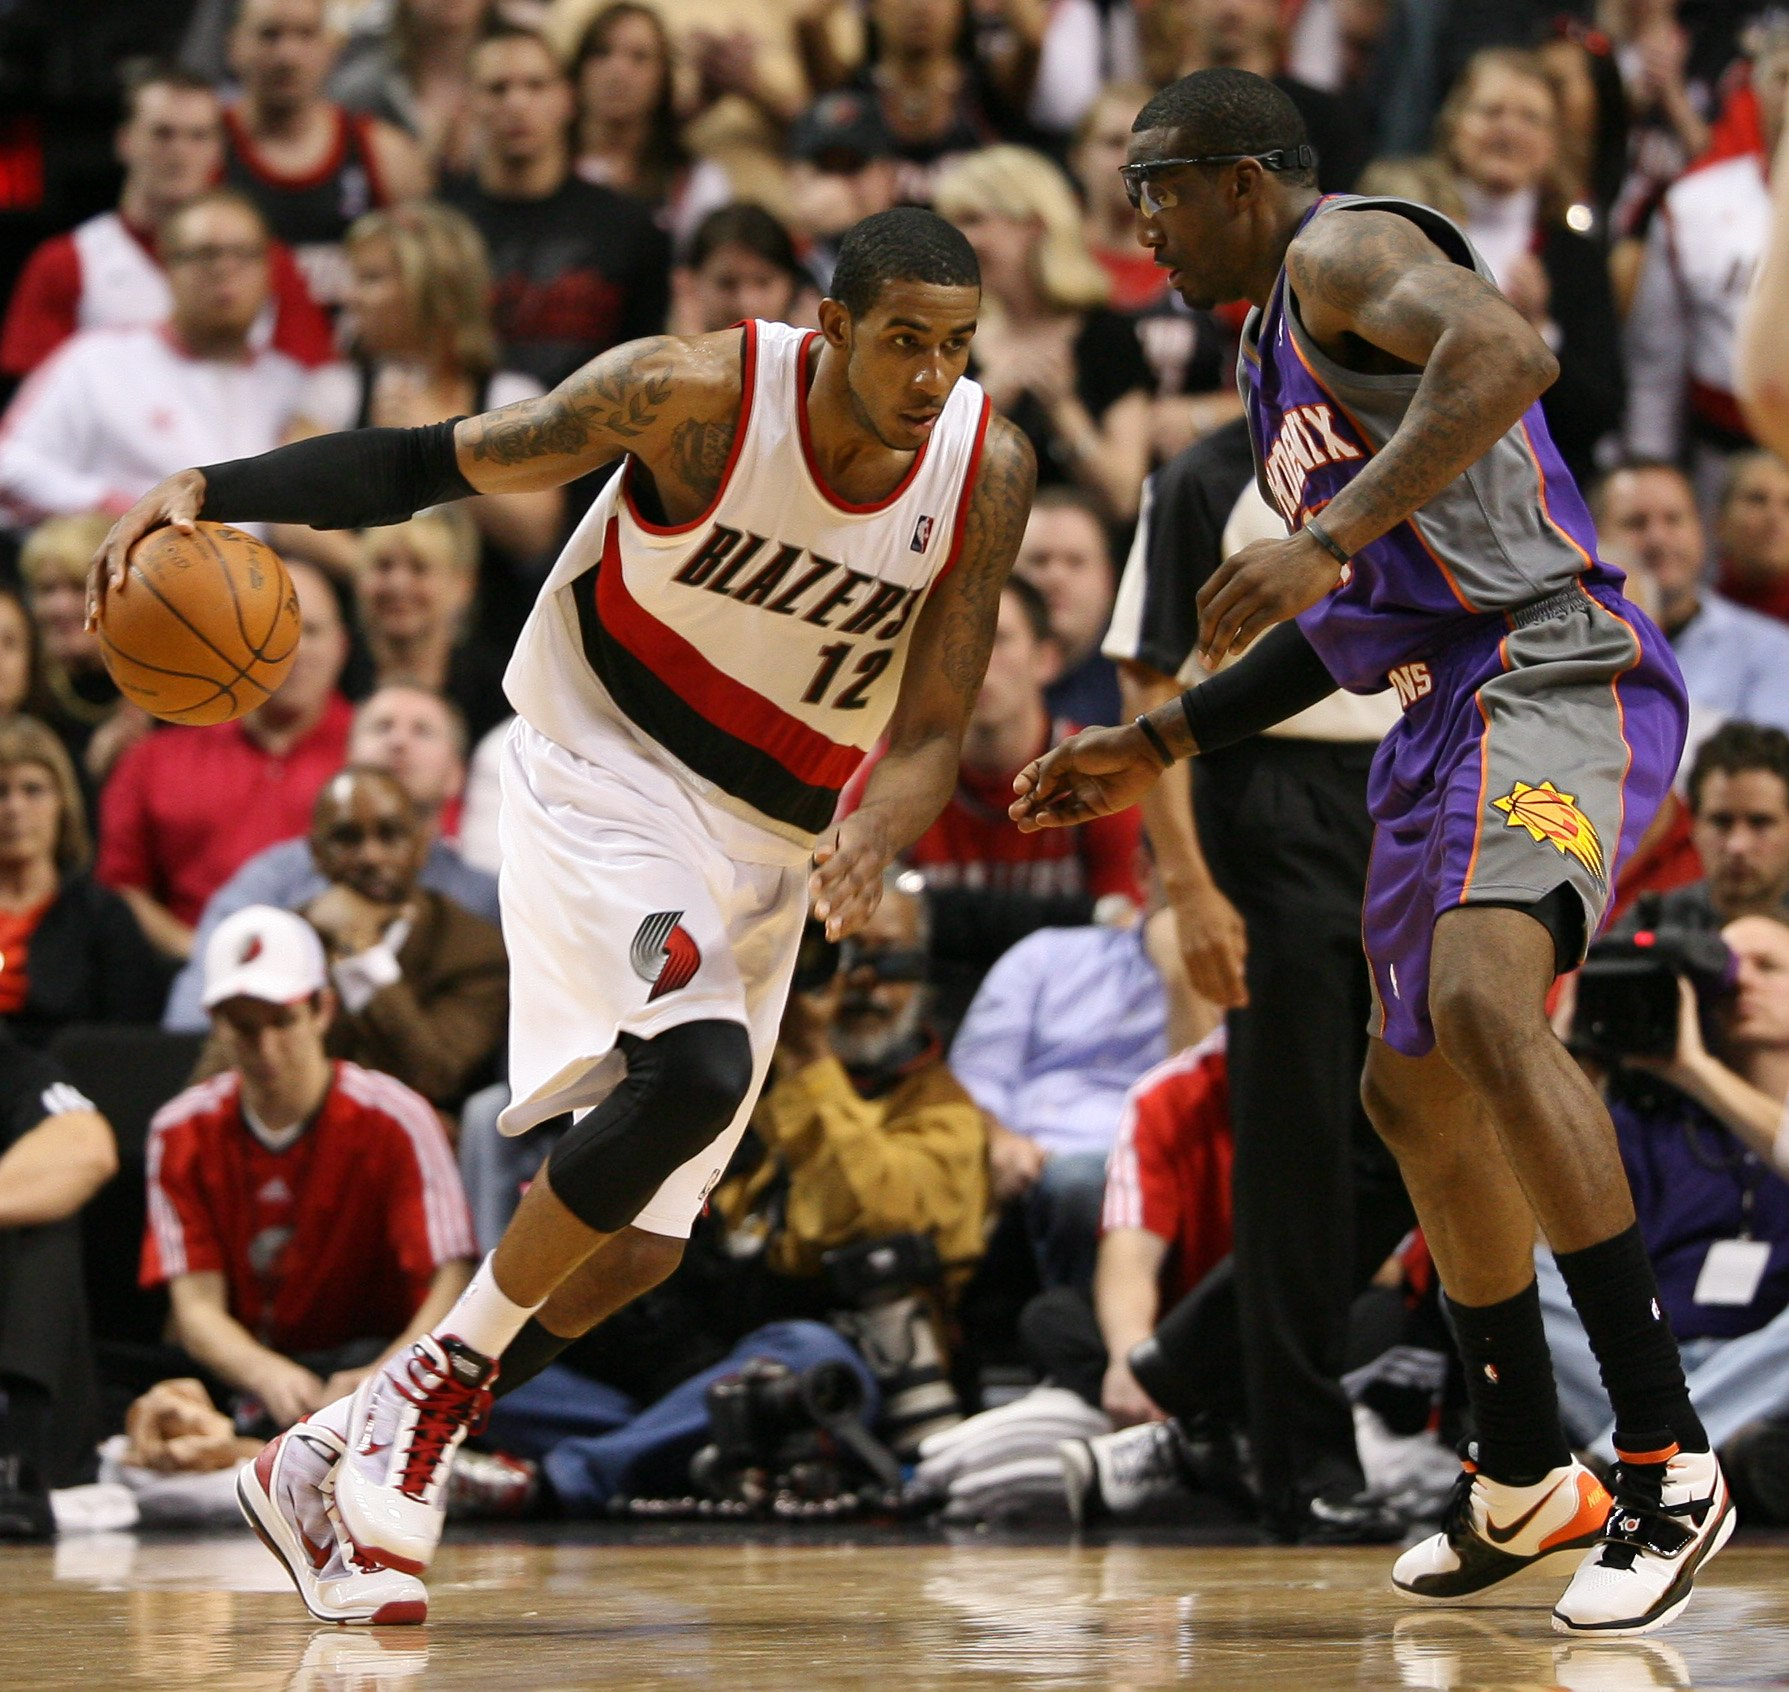 PORTLAND, OR - APRIL 29:  LaMarcus Aldridge #12 of the Portland Trail Blazers in action against Amare Stoudemire #1 of the Phoenix Suns during Game Six of the Western Conference Quarterfinals of the NBA Playoffs on April 29, 2010 at the Rose Garden in Por